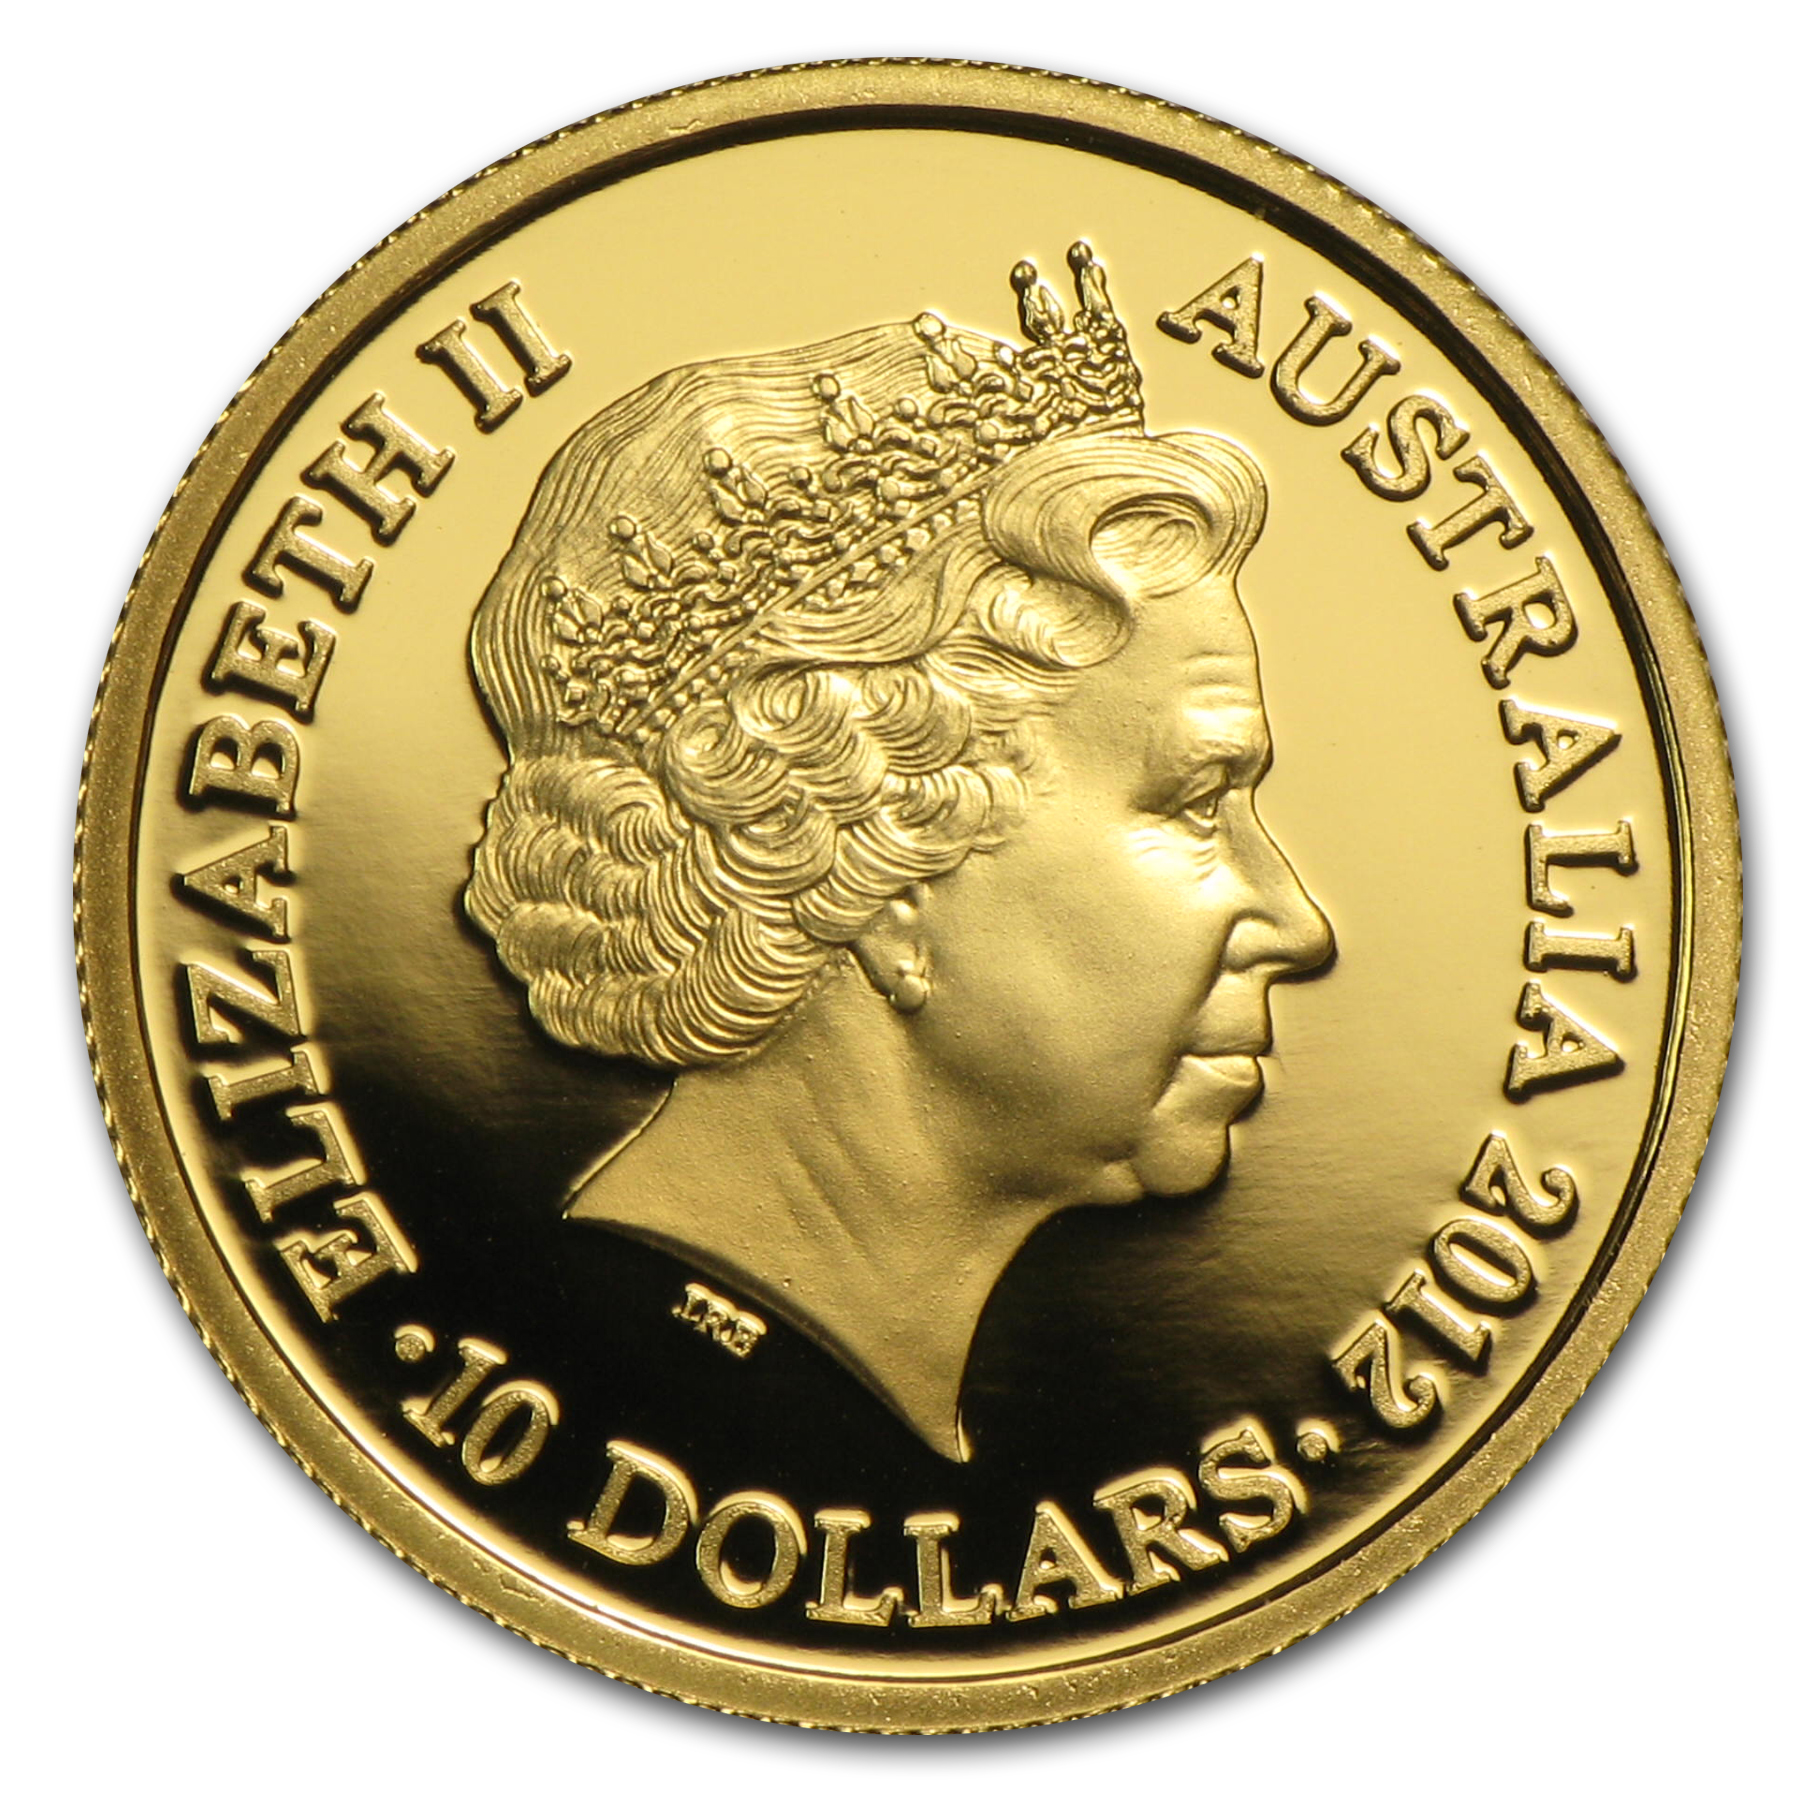 Royal Australian Mint 2012 1/10 oz Gold Proof- Year of the Dragon